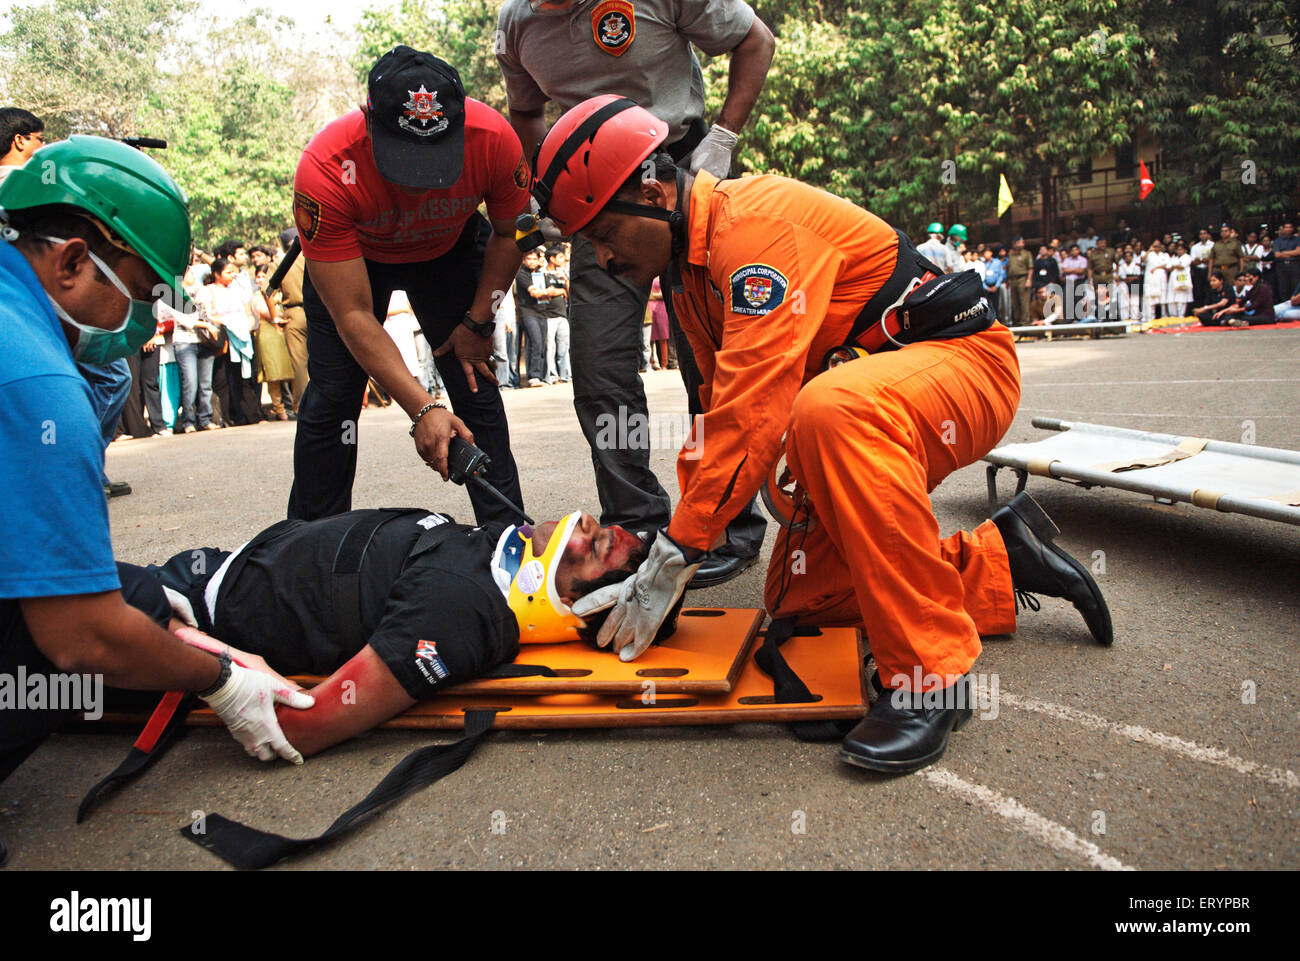 Fire brigade personnel demonstrate emergency rescue skill for KEM college students in Bombay Mumbai - Stock Image